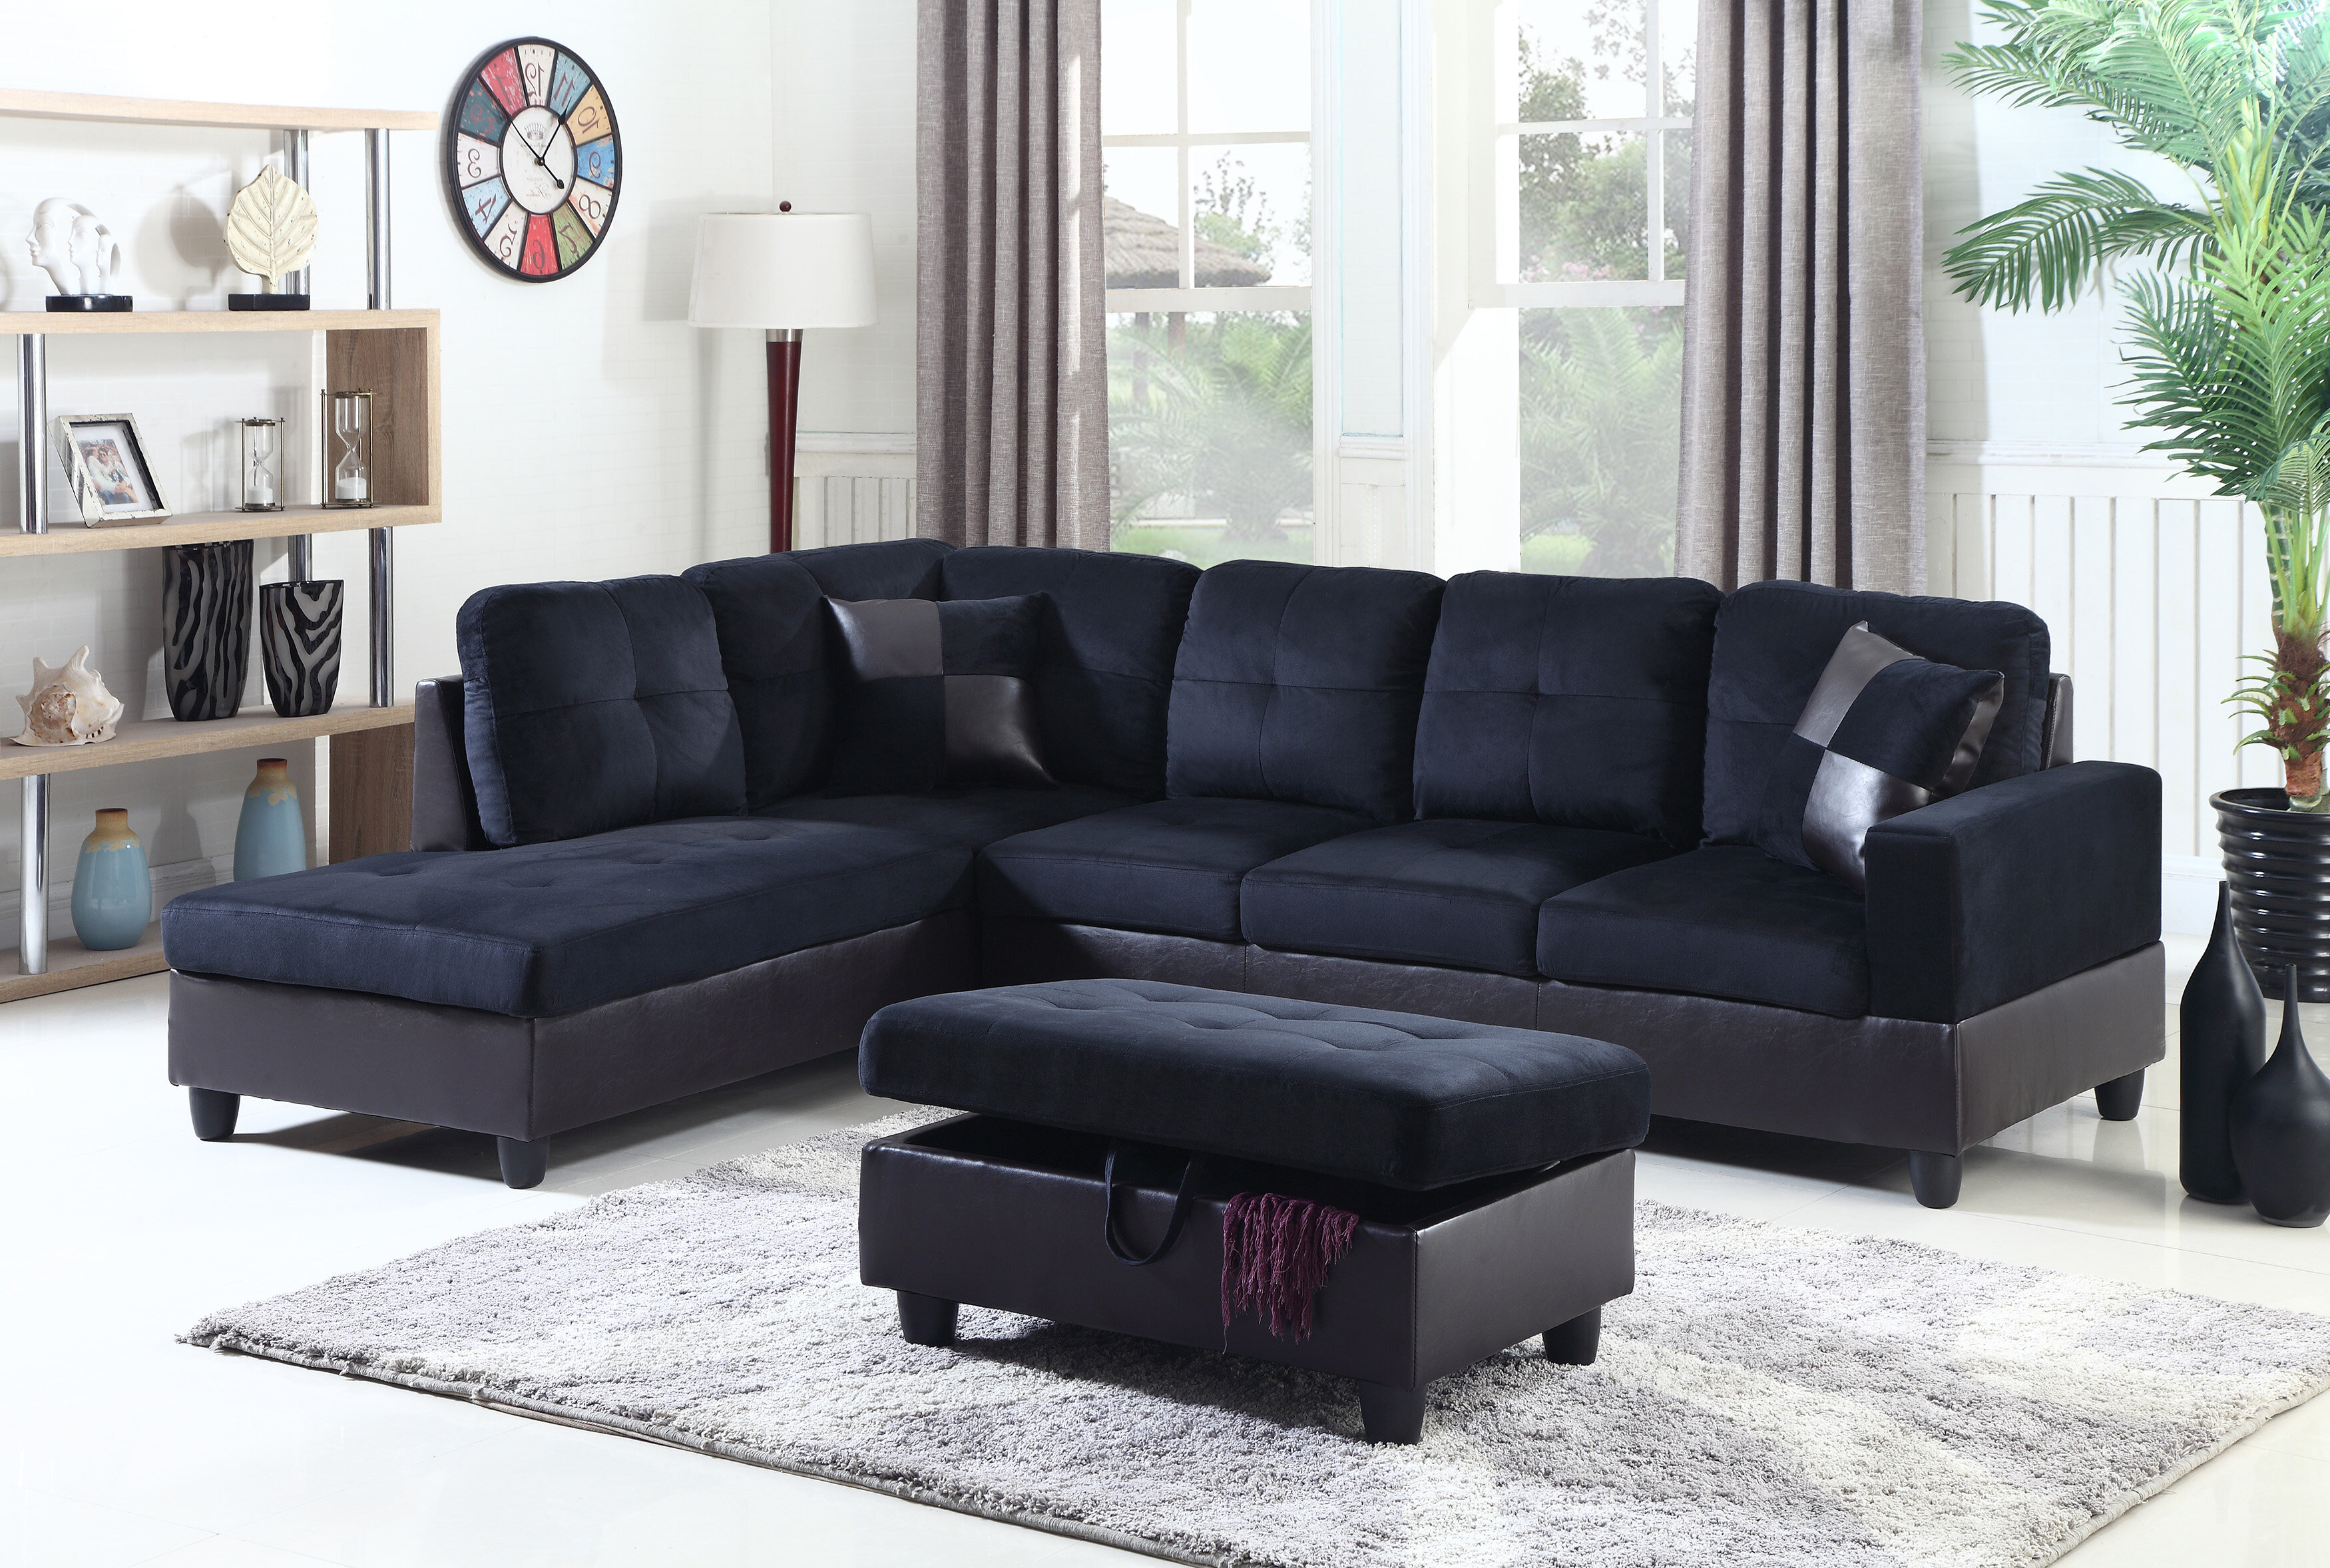 Beverly fine furniture aiden sectional wayfair